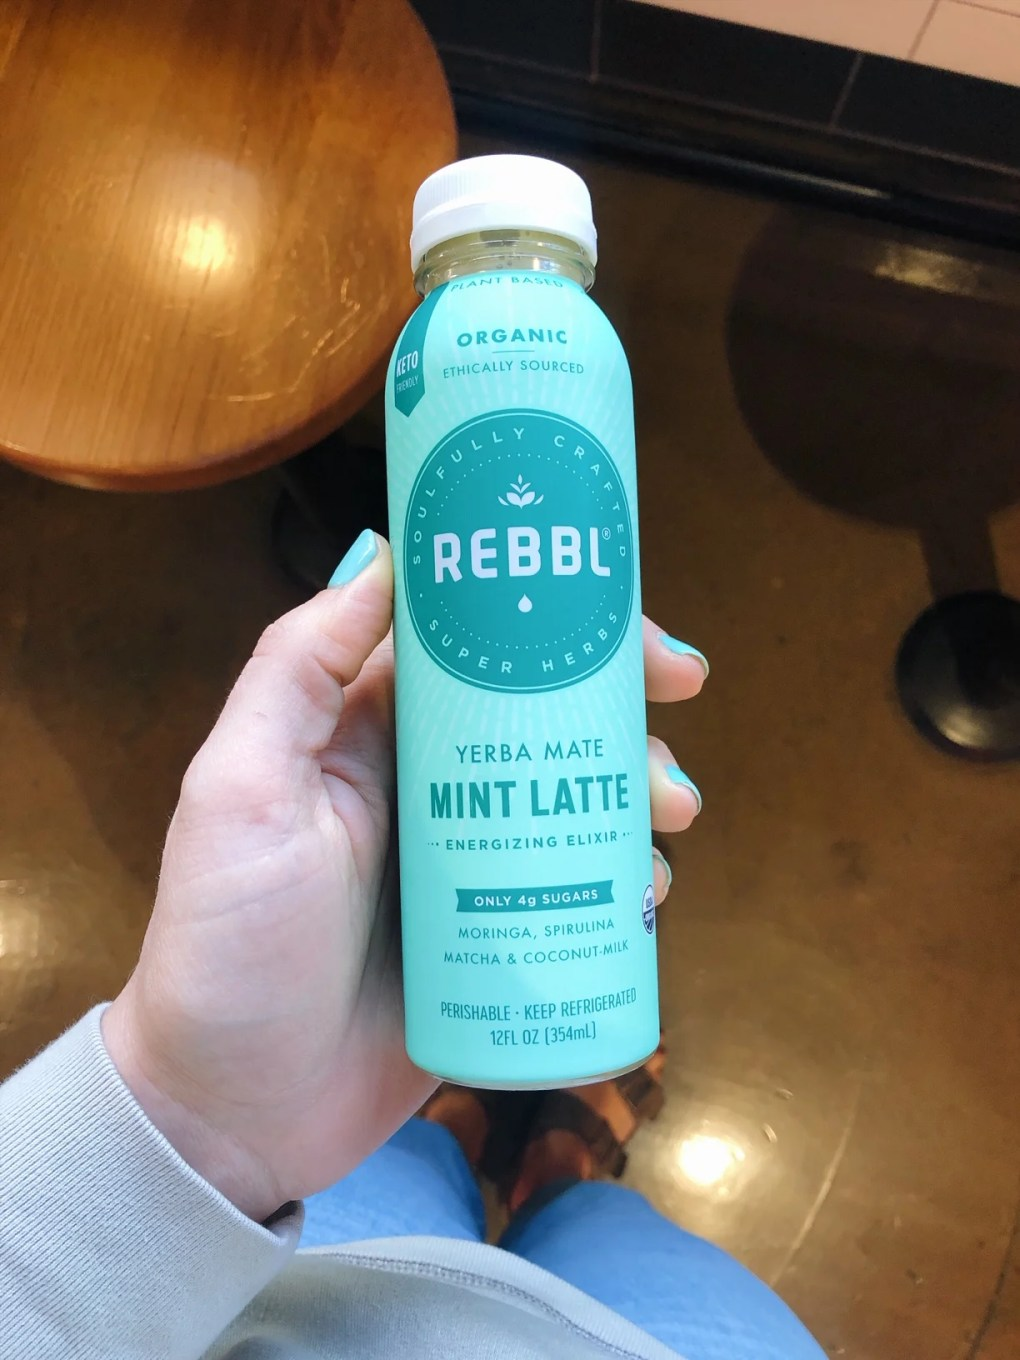 Holding a Chocolate mint Rebbl drink in the grocery store